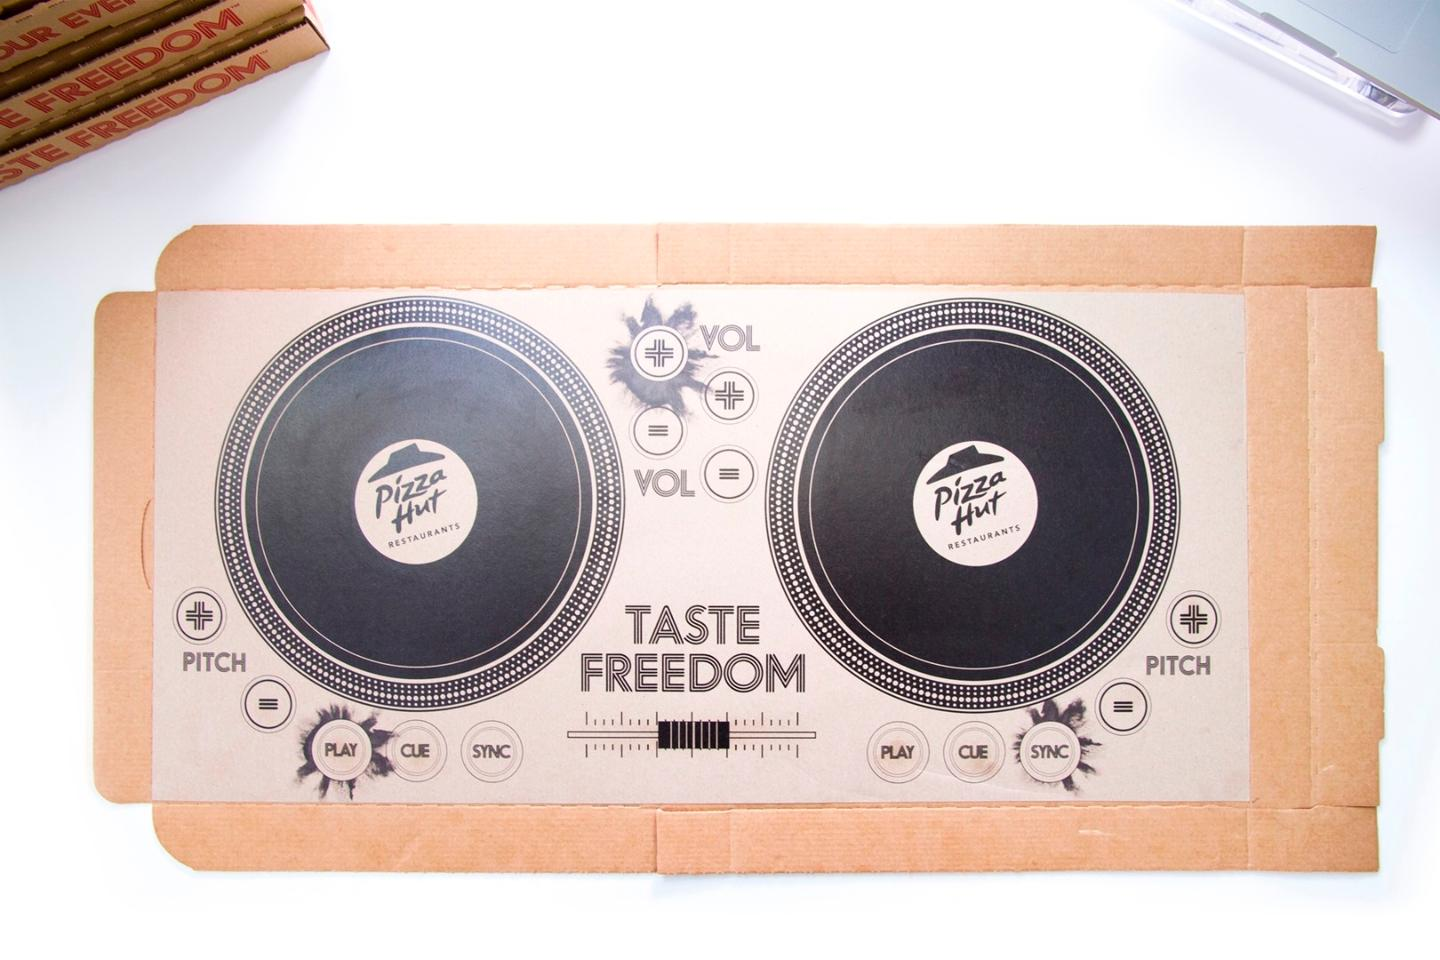 The pizza box uses conductive inks printed into a bespoke circuit board